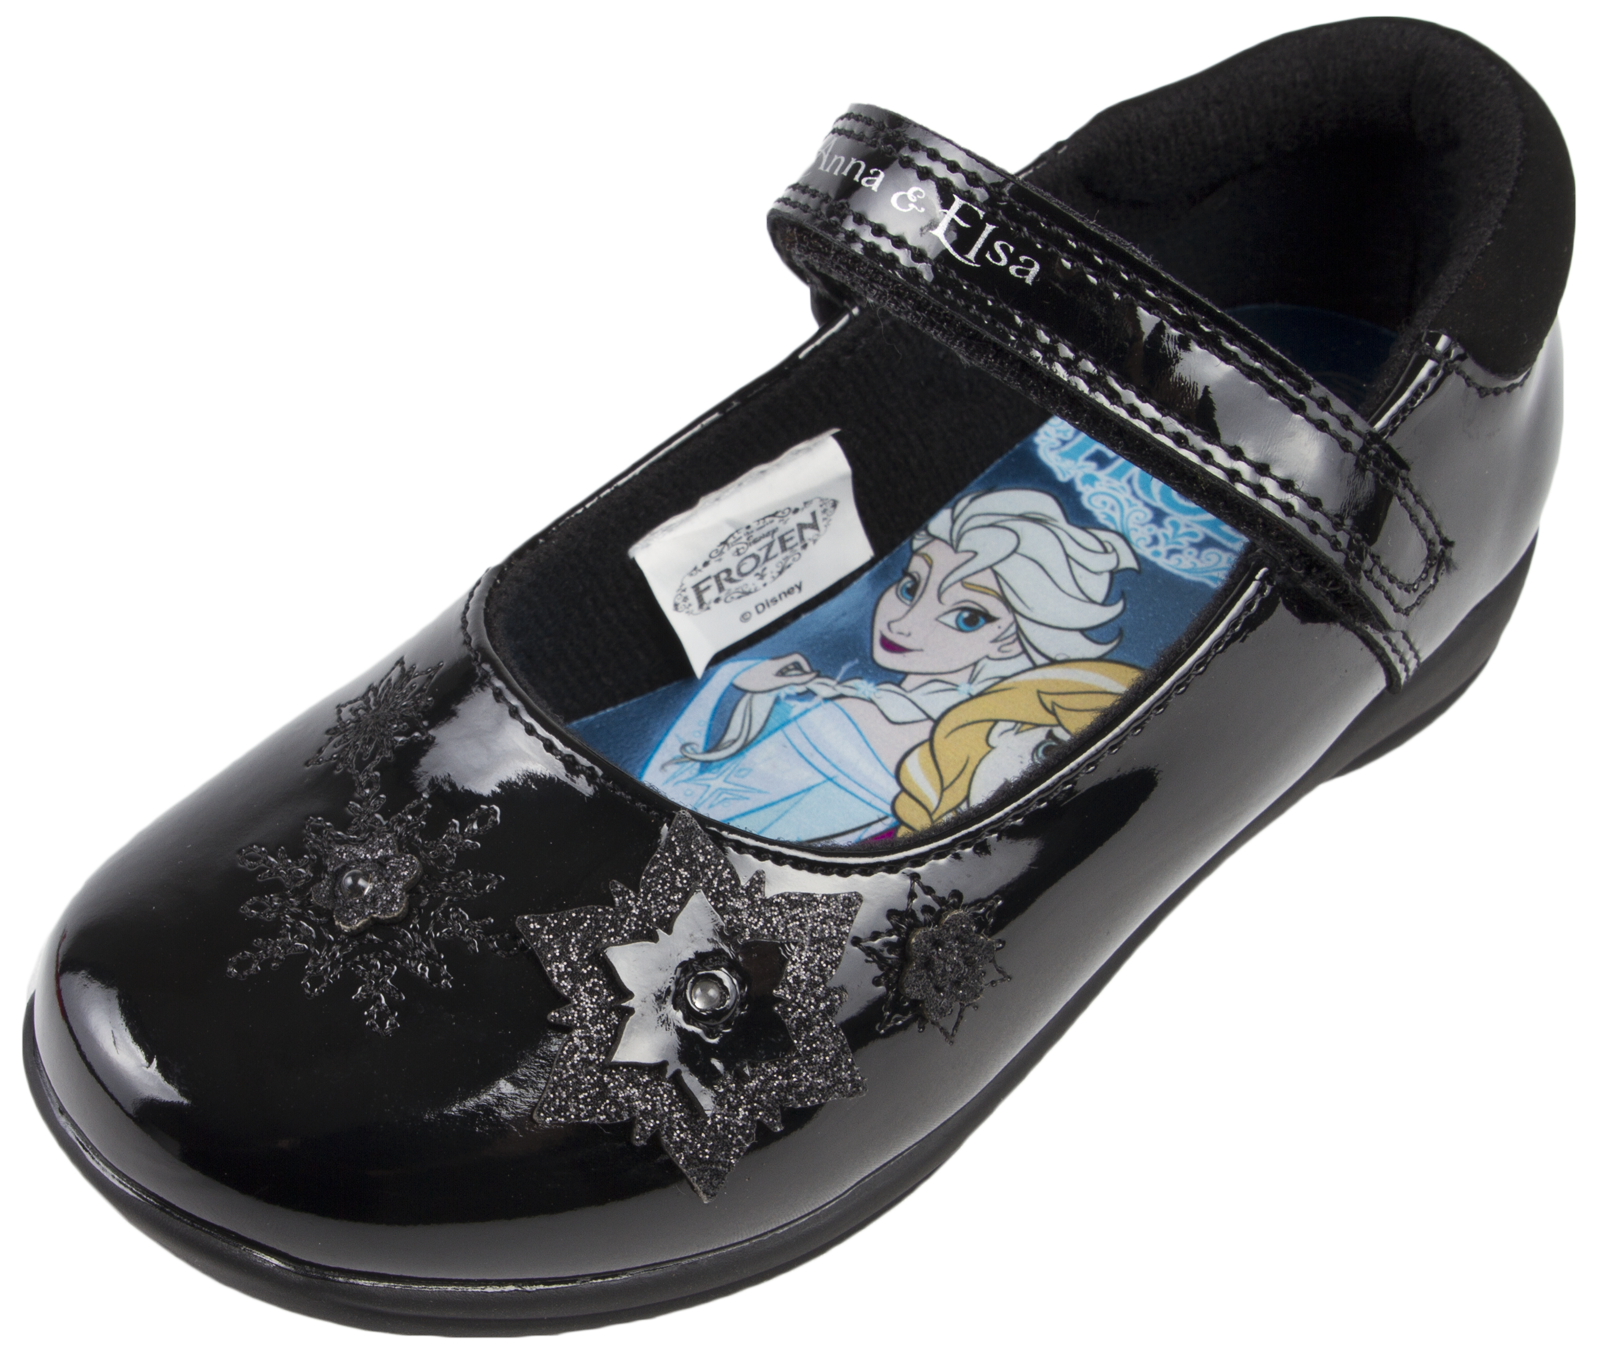 Disney Frozen Black School Shoes Flashing Light Up Faux Leather Mary